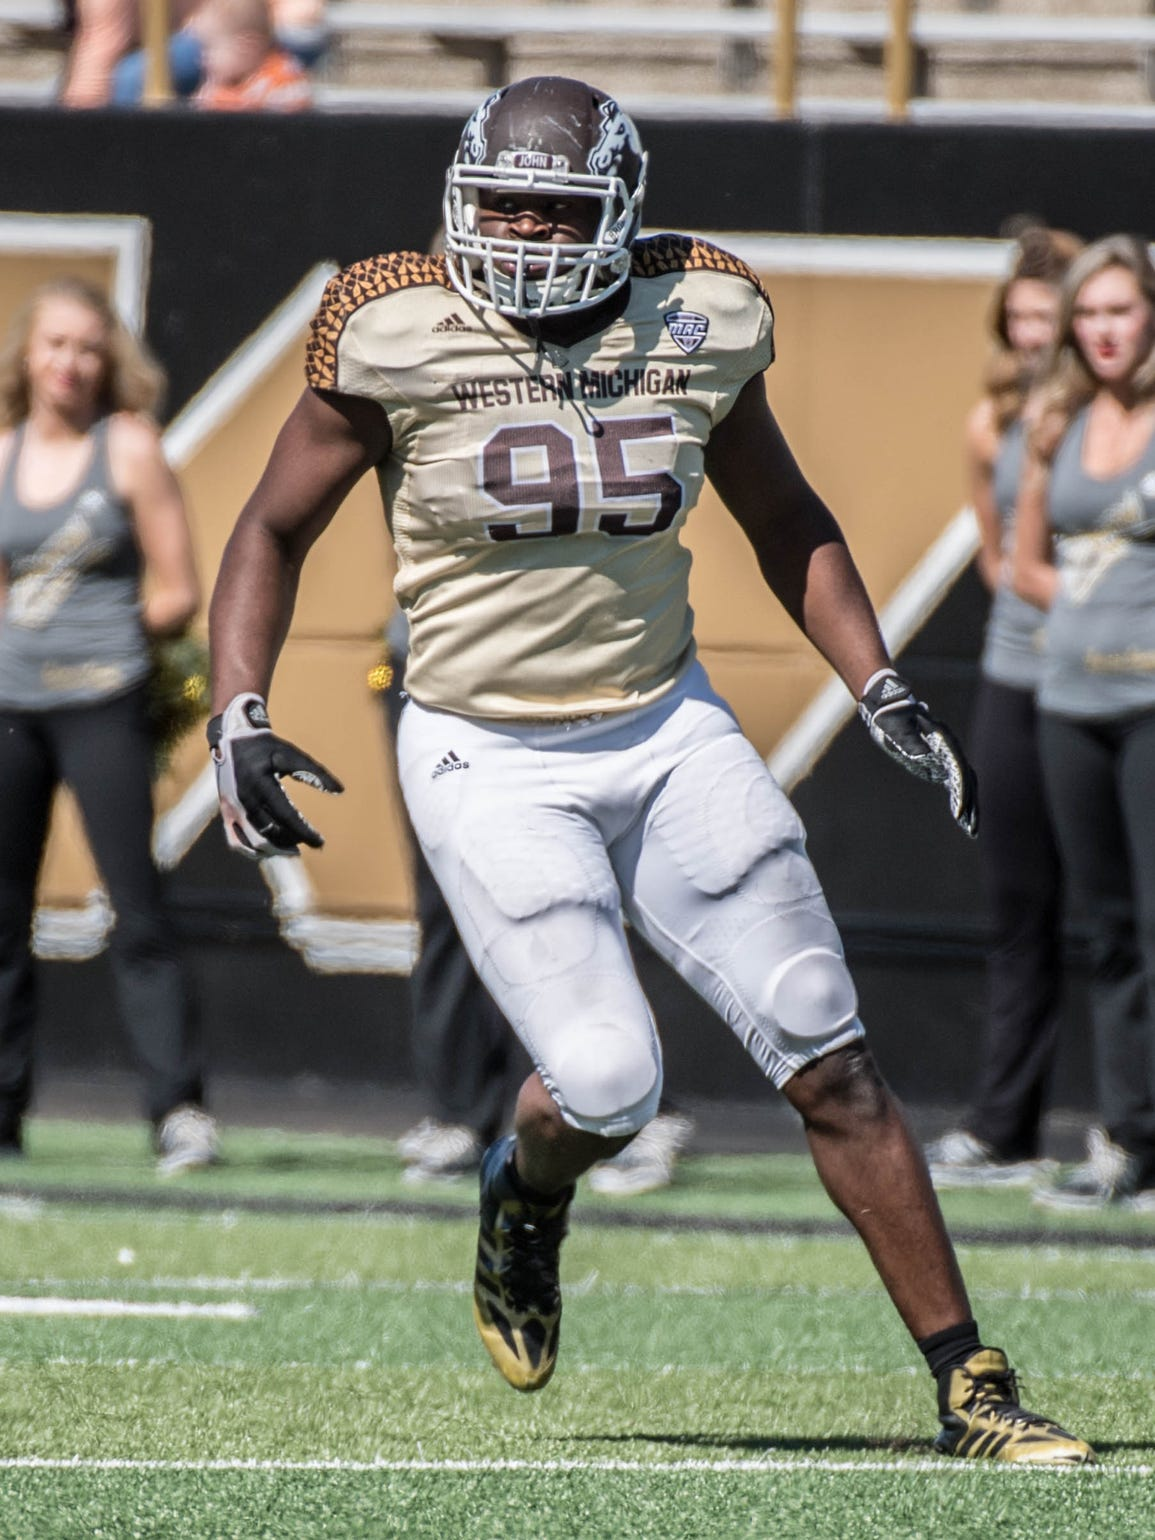 WMU's Odel Miller (95) during spring game, when he